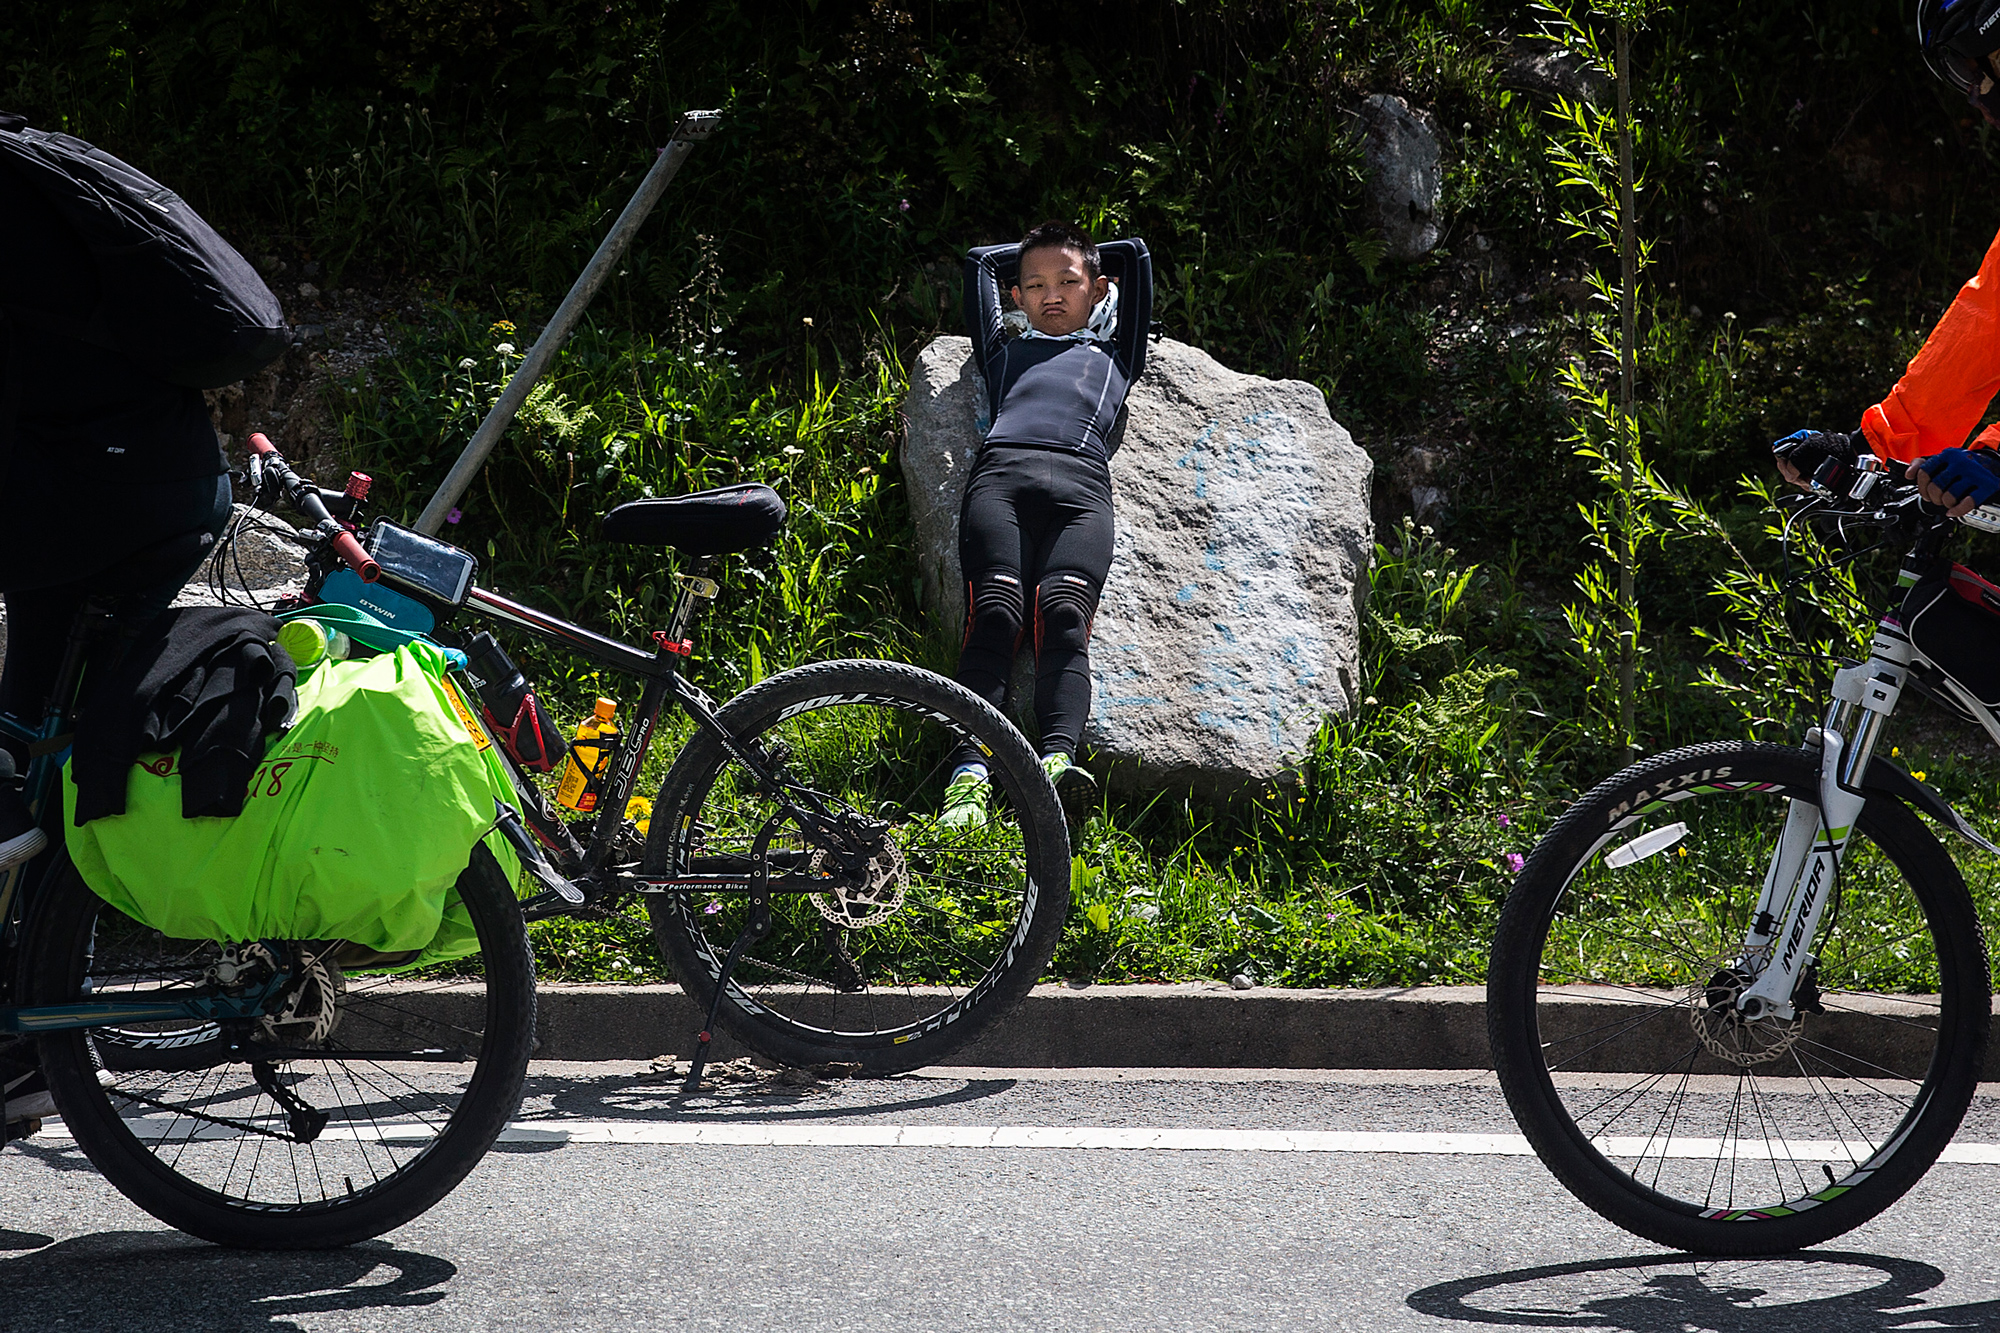 On the fifth day of the trip, Runxi rests on the side of the road because he is chafed from so many hours on his bike seat, in Zheduotang, Garze, Sichuan, July 19.